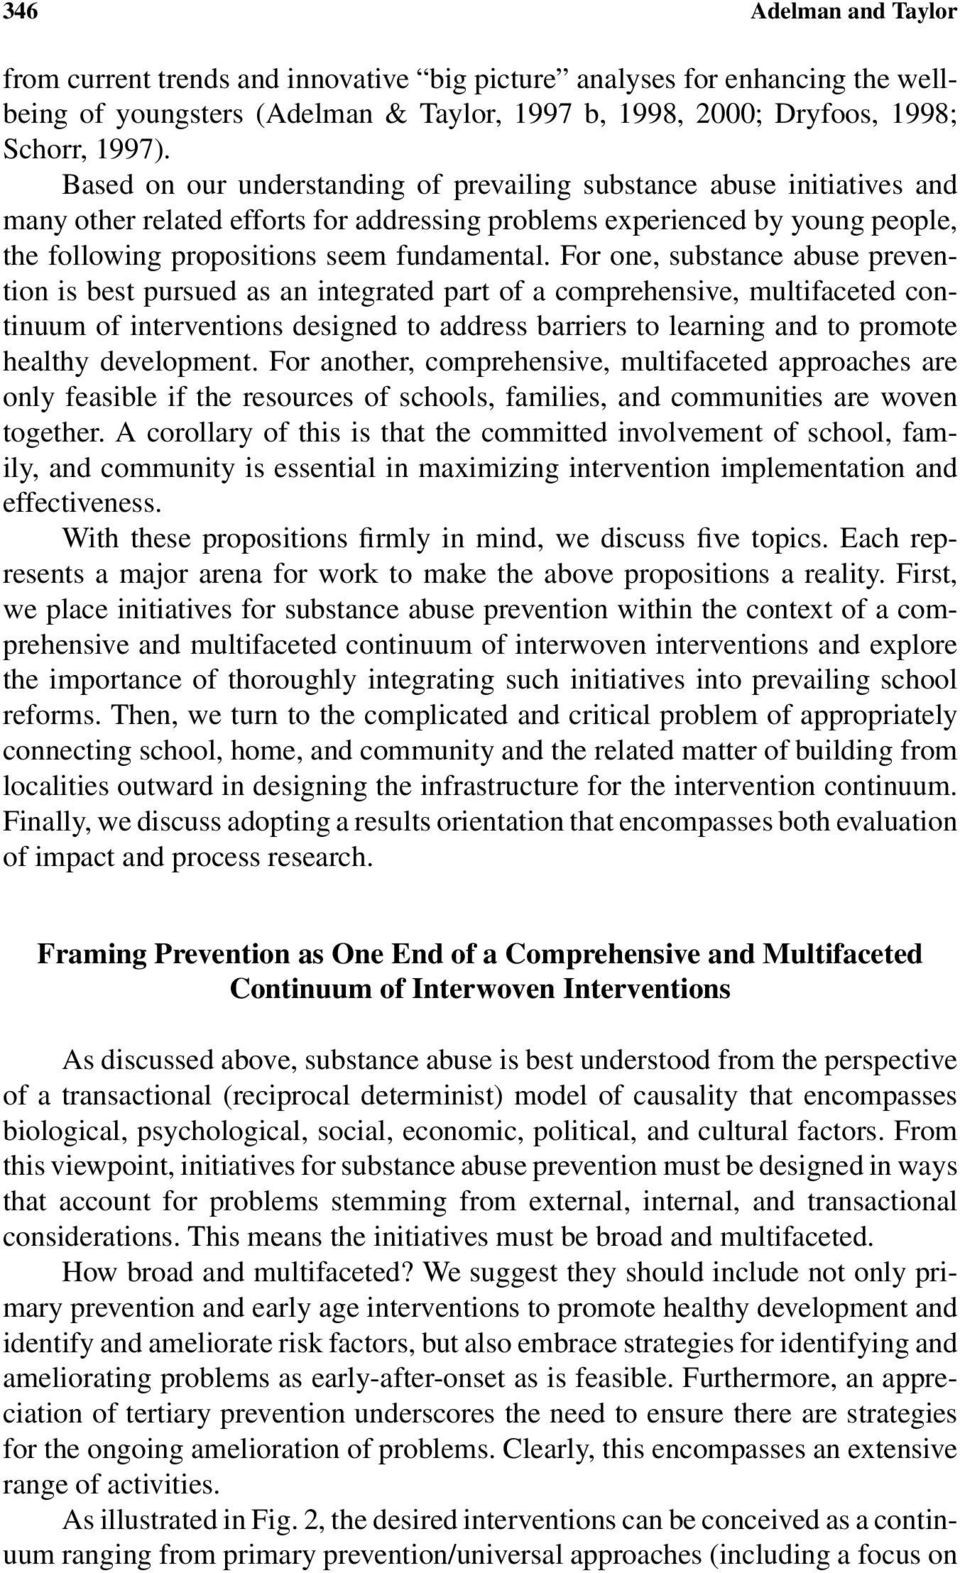 For one, substance abuse prevention is best pursued as an integrated part of a comprehensive, multifaceted continuum of interventions designed to address barriers to learning and to promote healthy